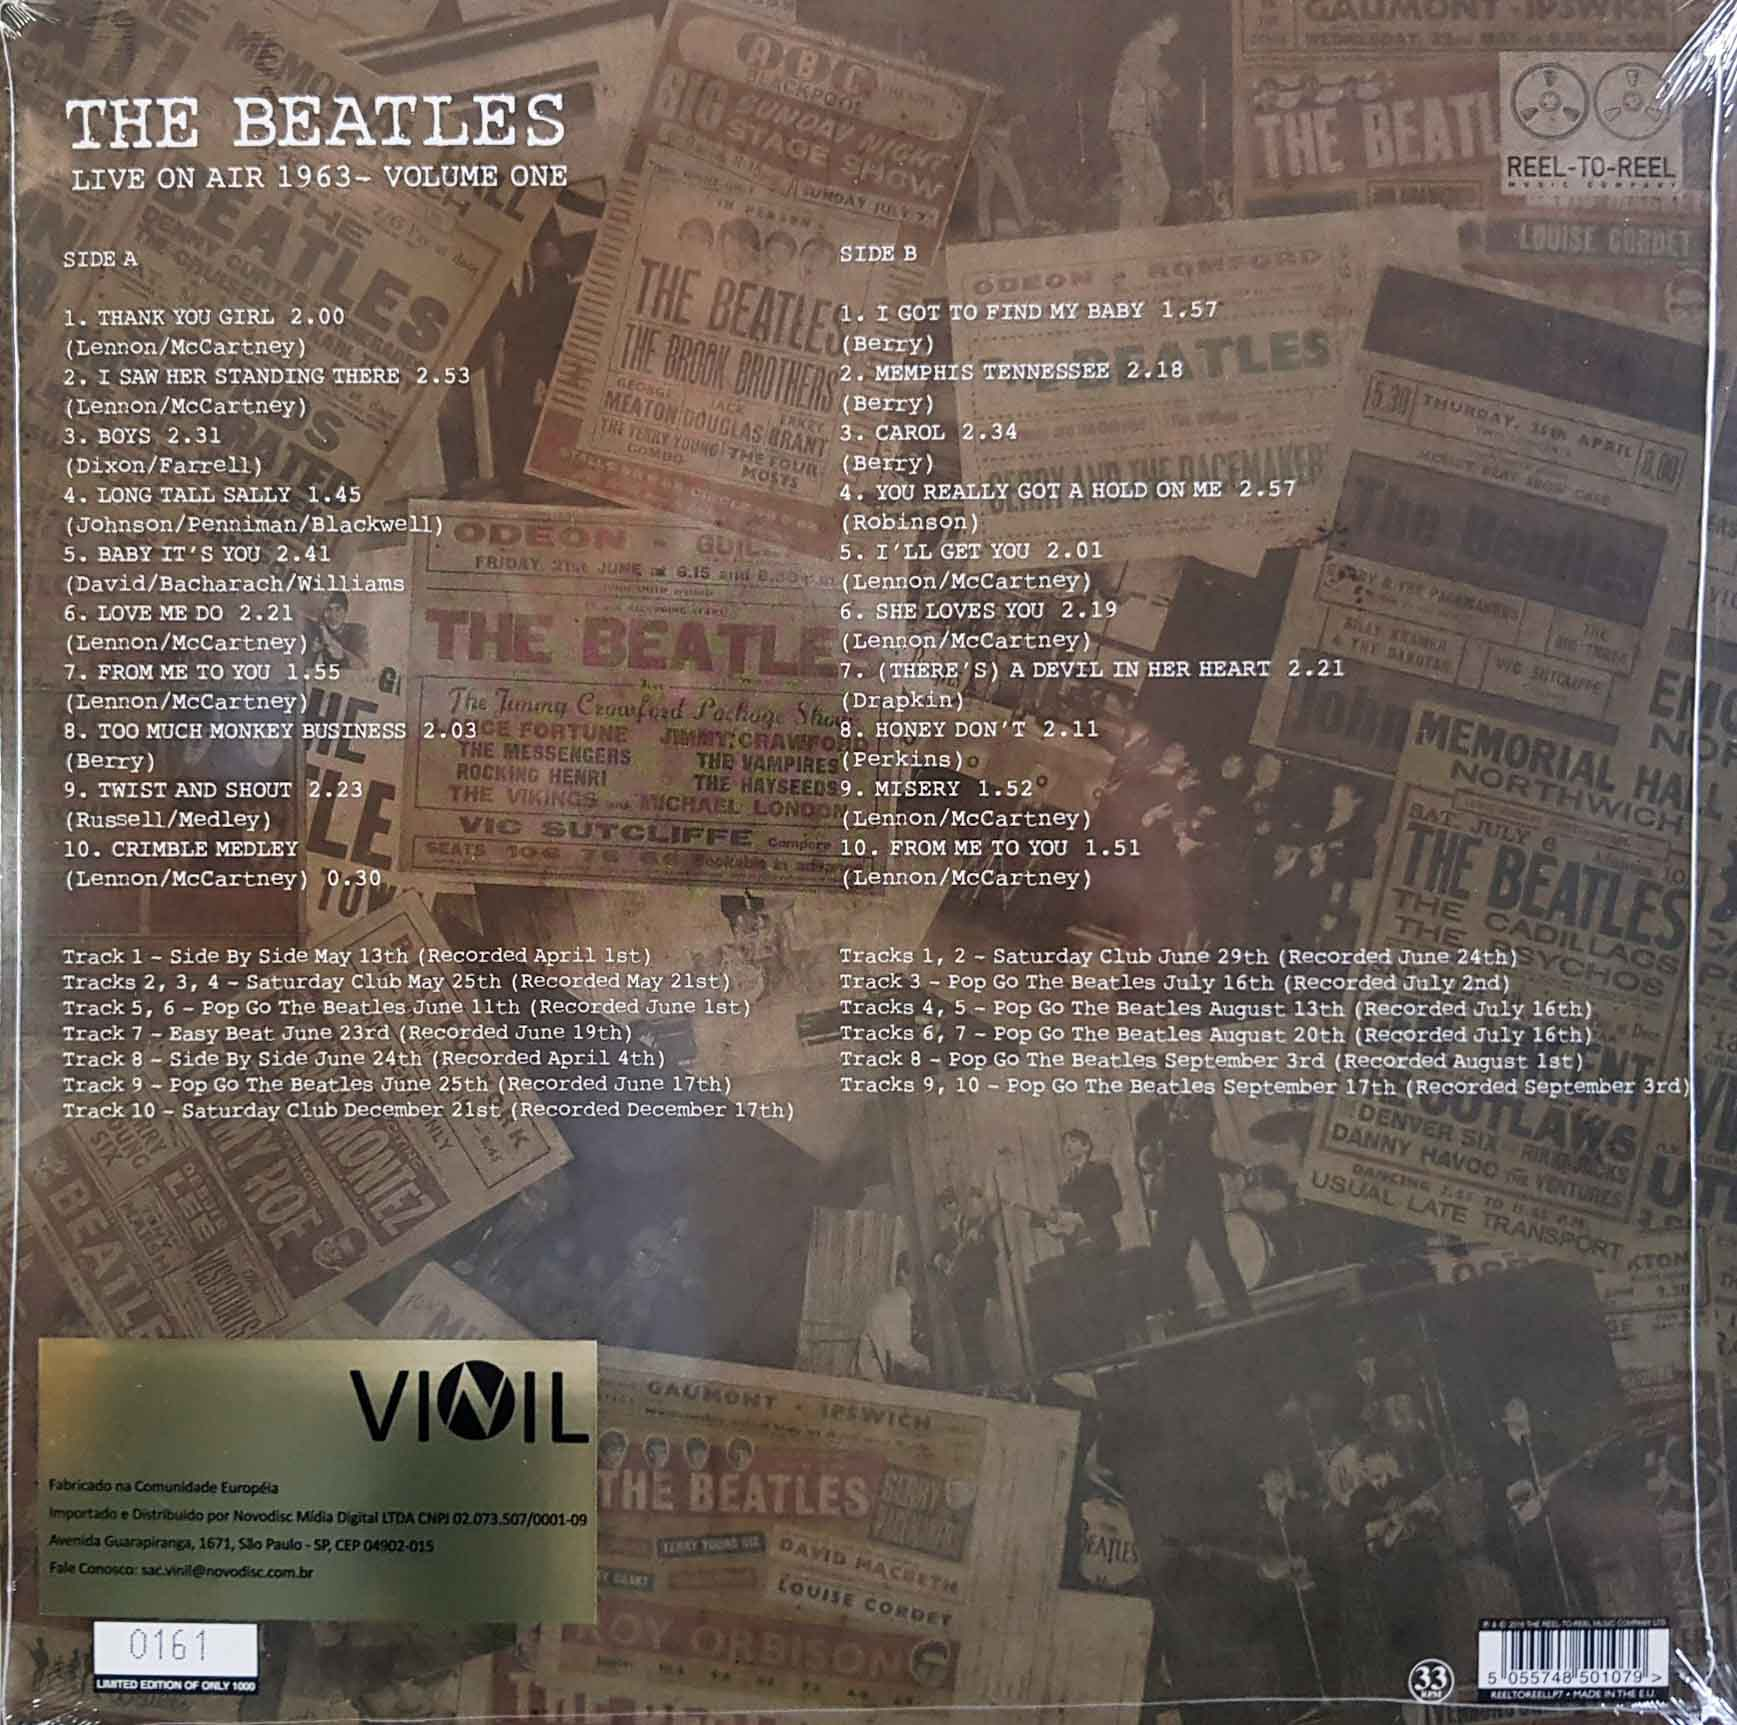 Lp Vinil The Beatles Live On Air 1963 Vol. 1